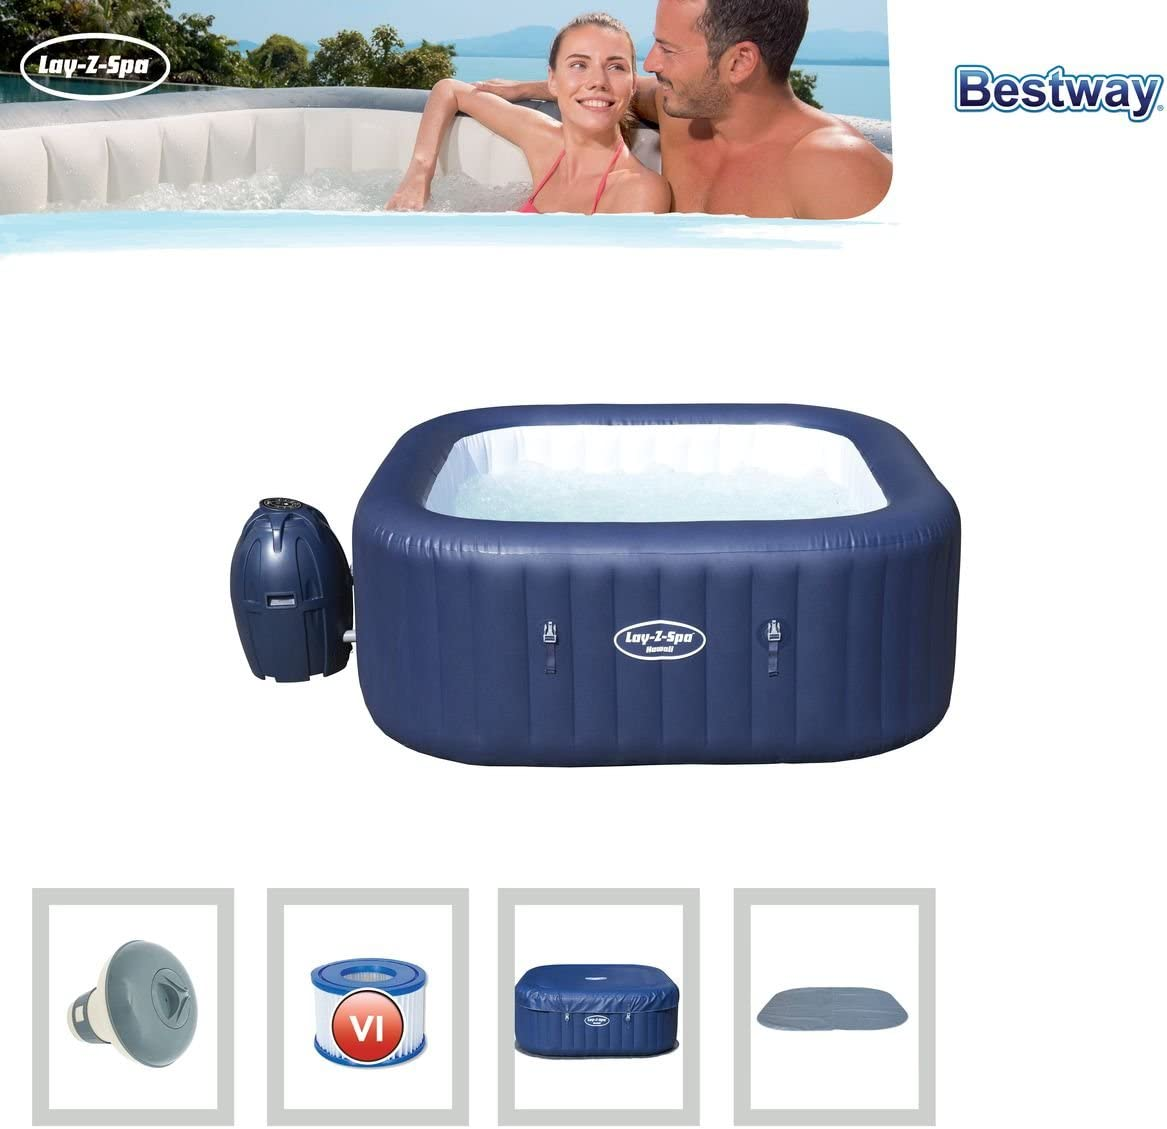 Bestway 54154 - Spa Hinchable Lay- Z-Spa Hawaii Para 4-6 personas: Amazon.es: Jardín